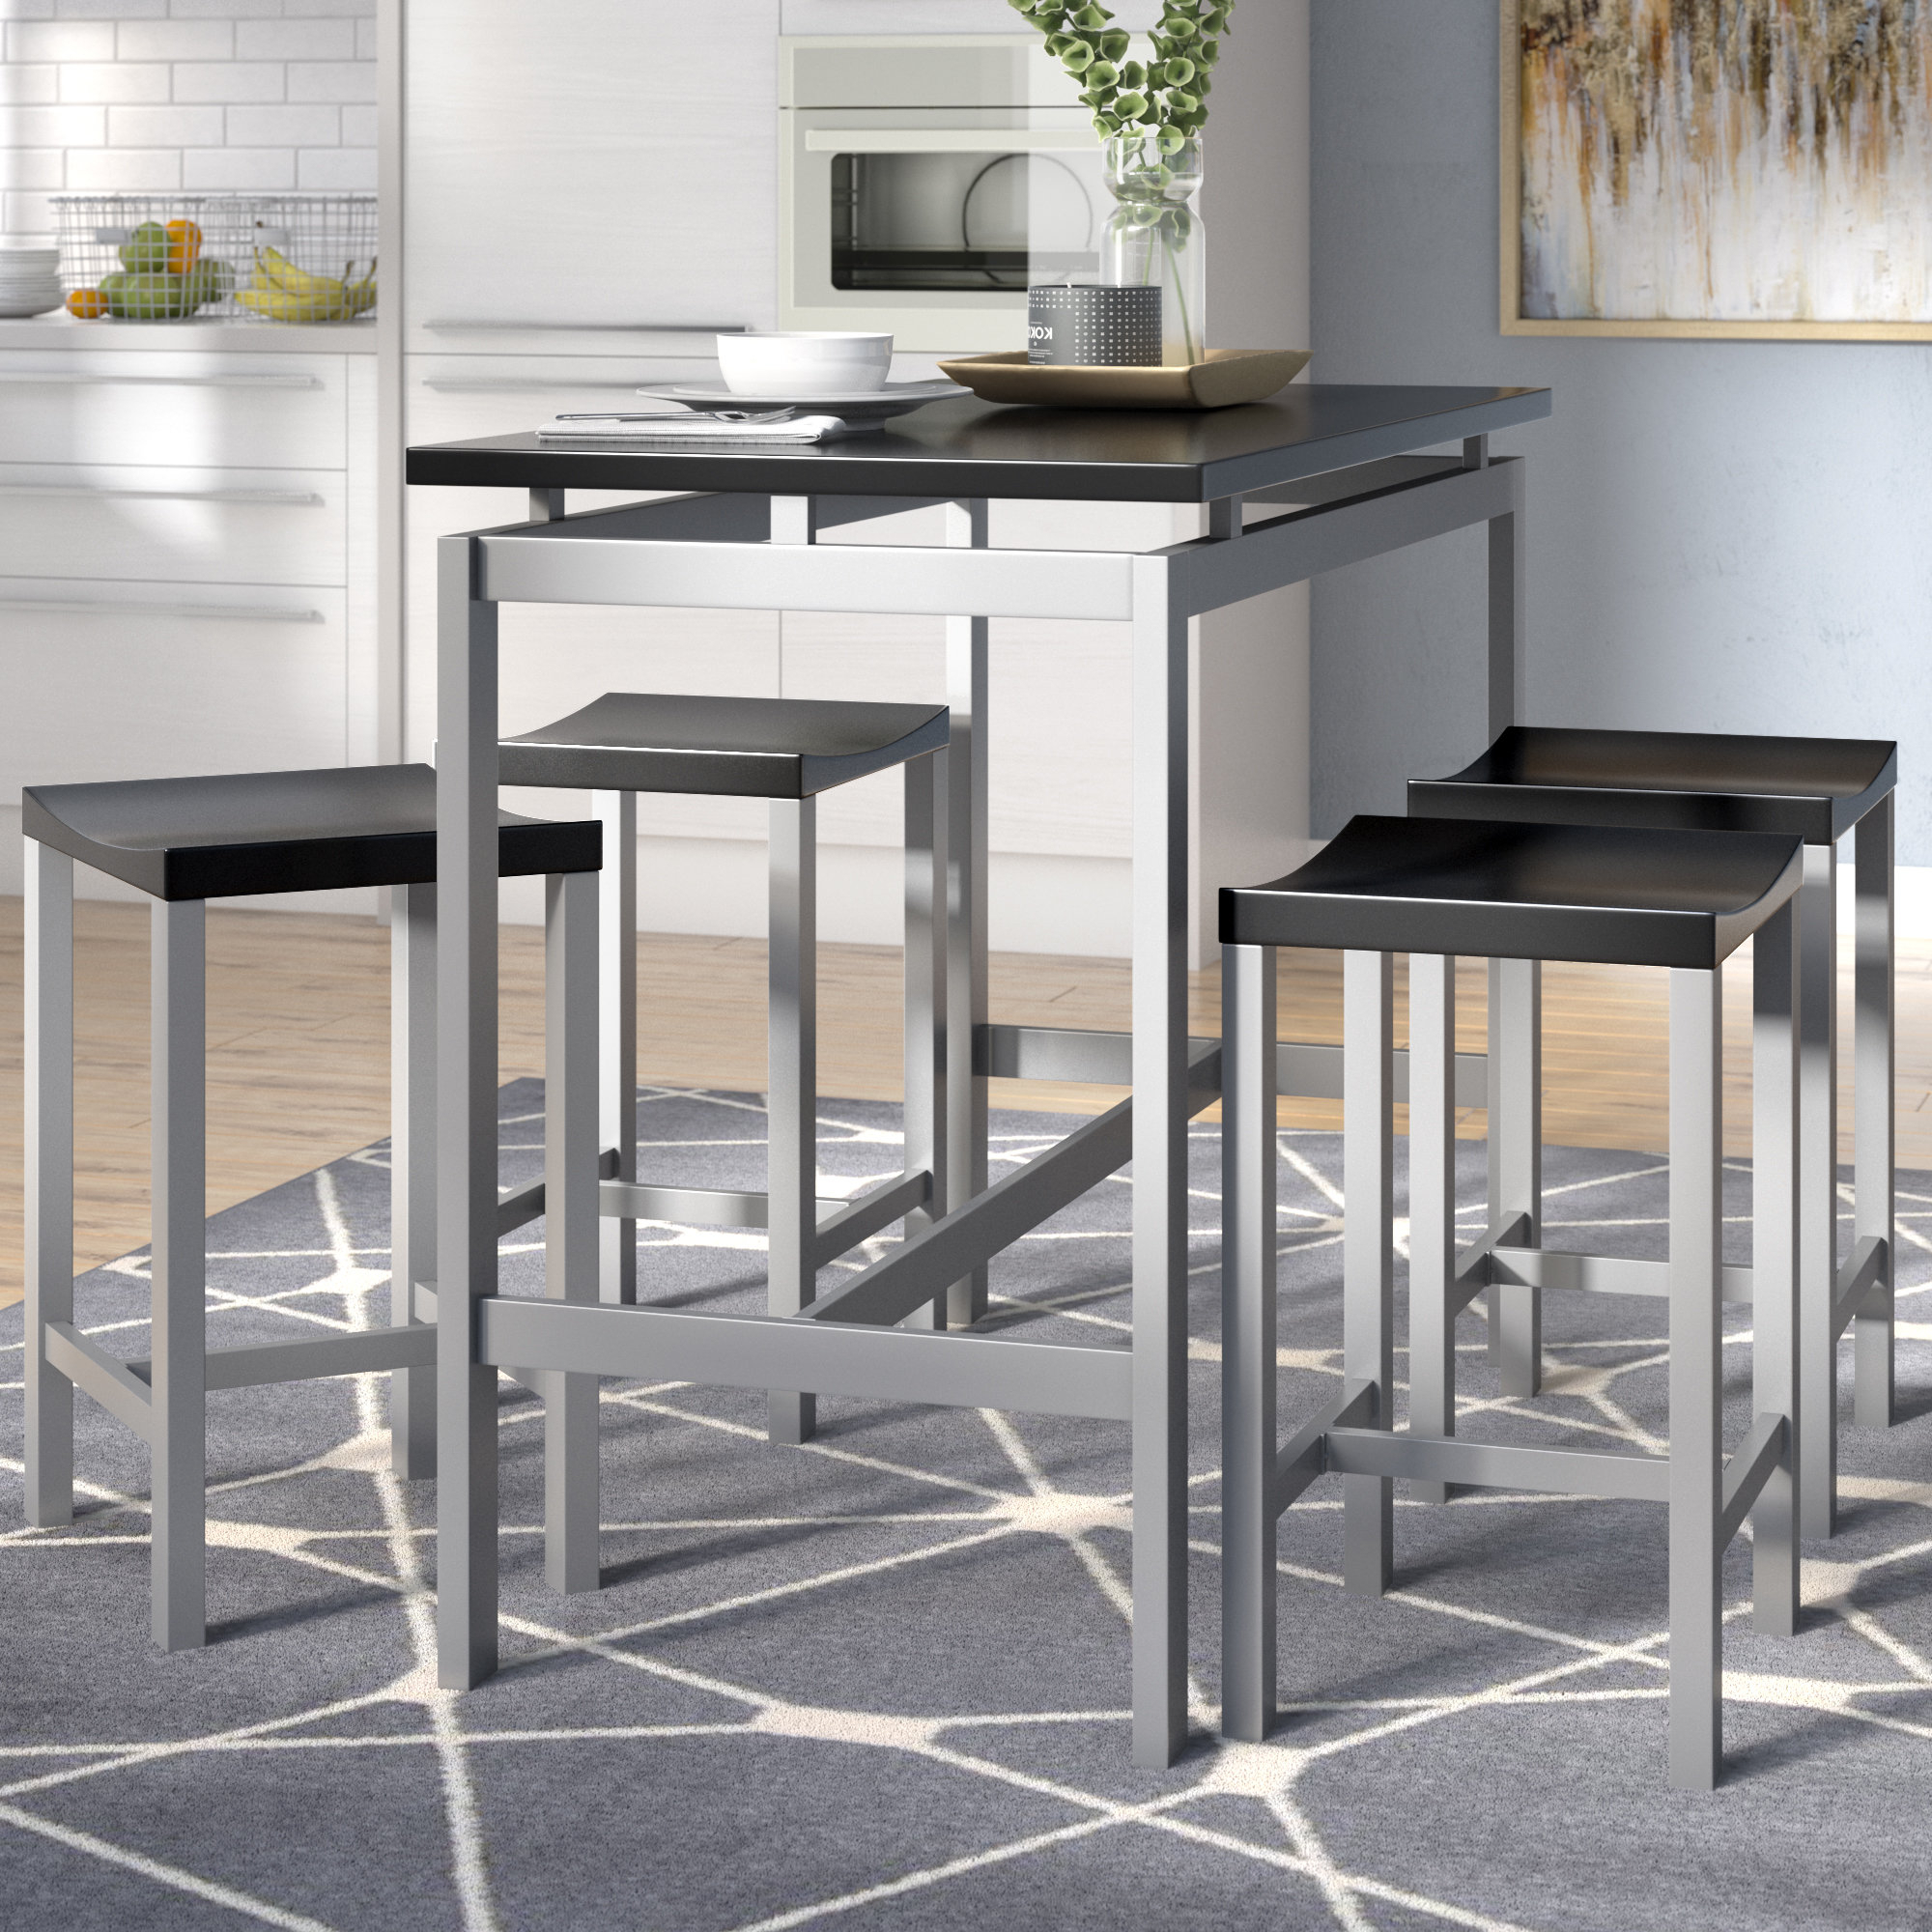 Saintcroix 3 Piece Dining Sets Regarding Widely Used Mcgonigal 5 Piece Pub Table Set (View 15 of 20)